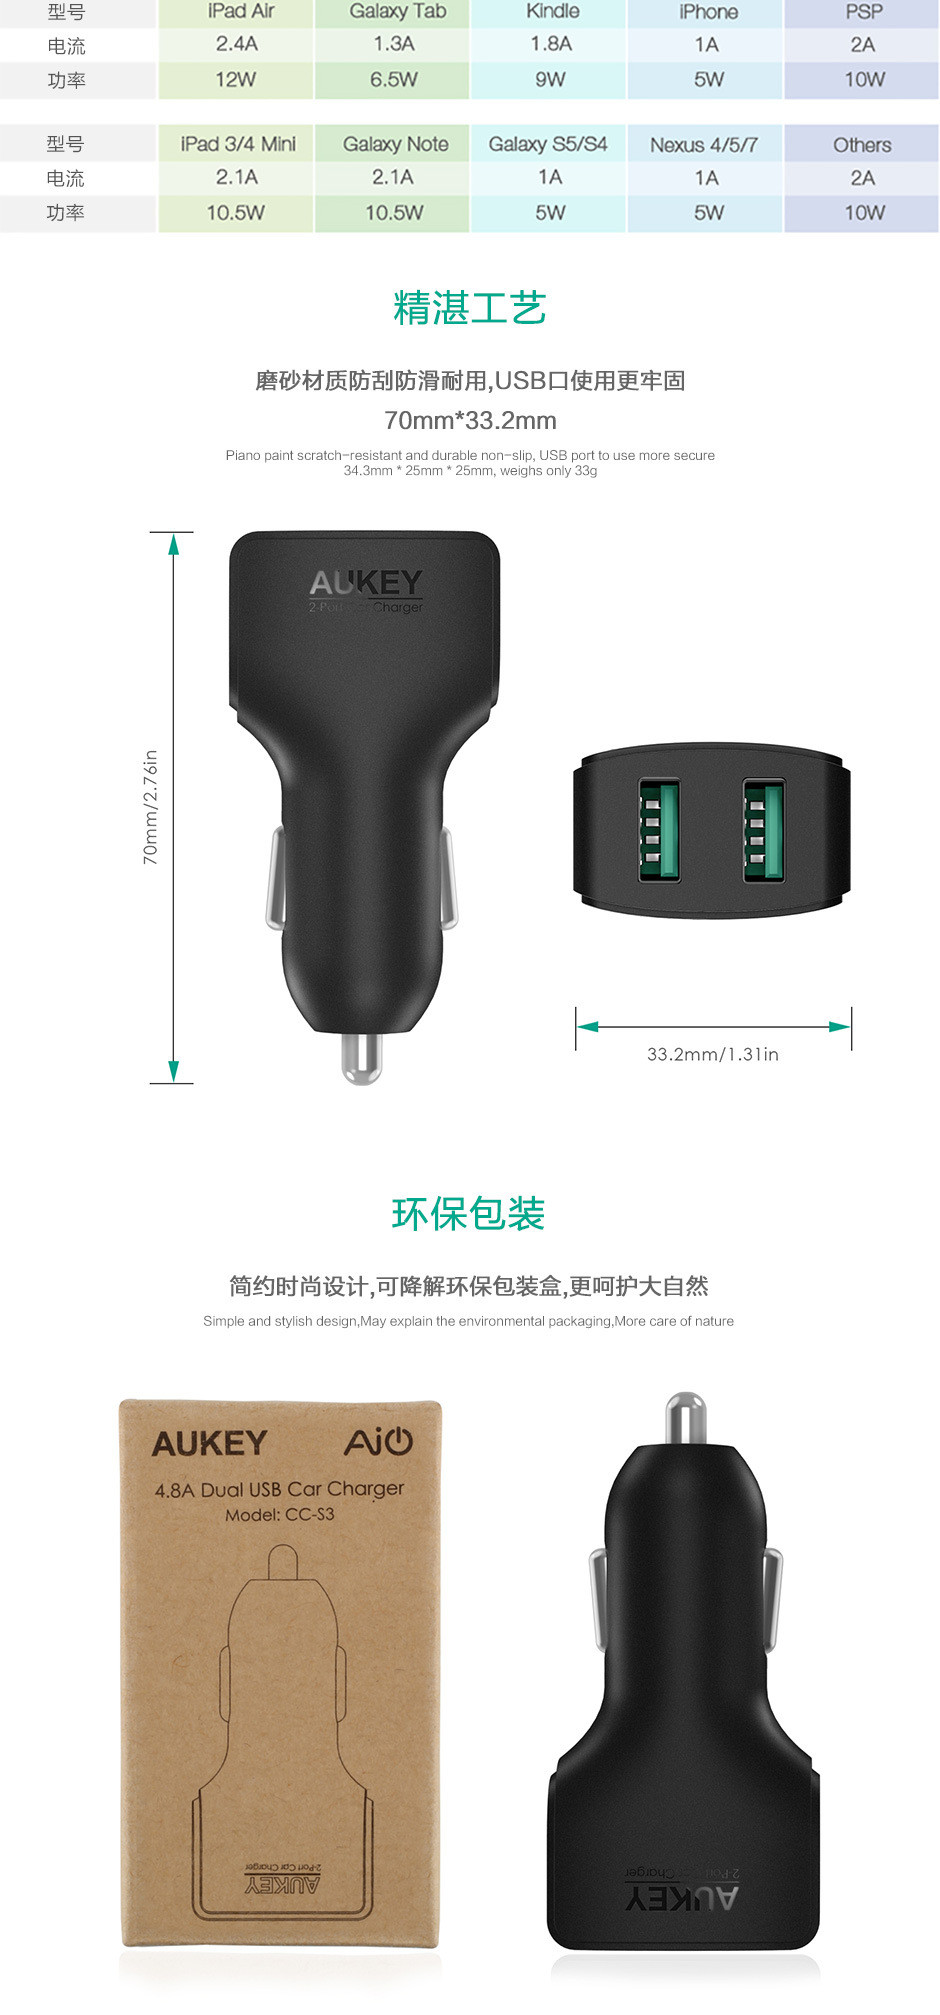 Aukey I6 Car Phone Charger For iPhone 5S 7 Plus (13)